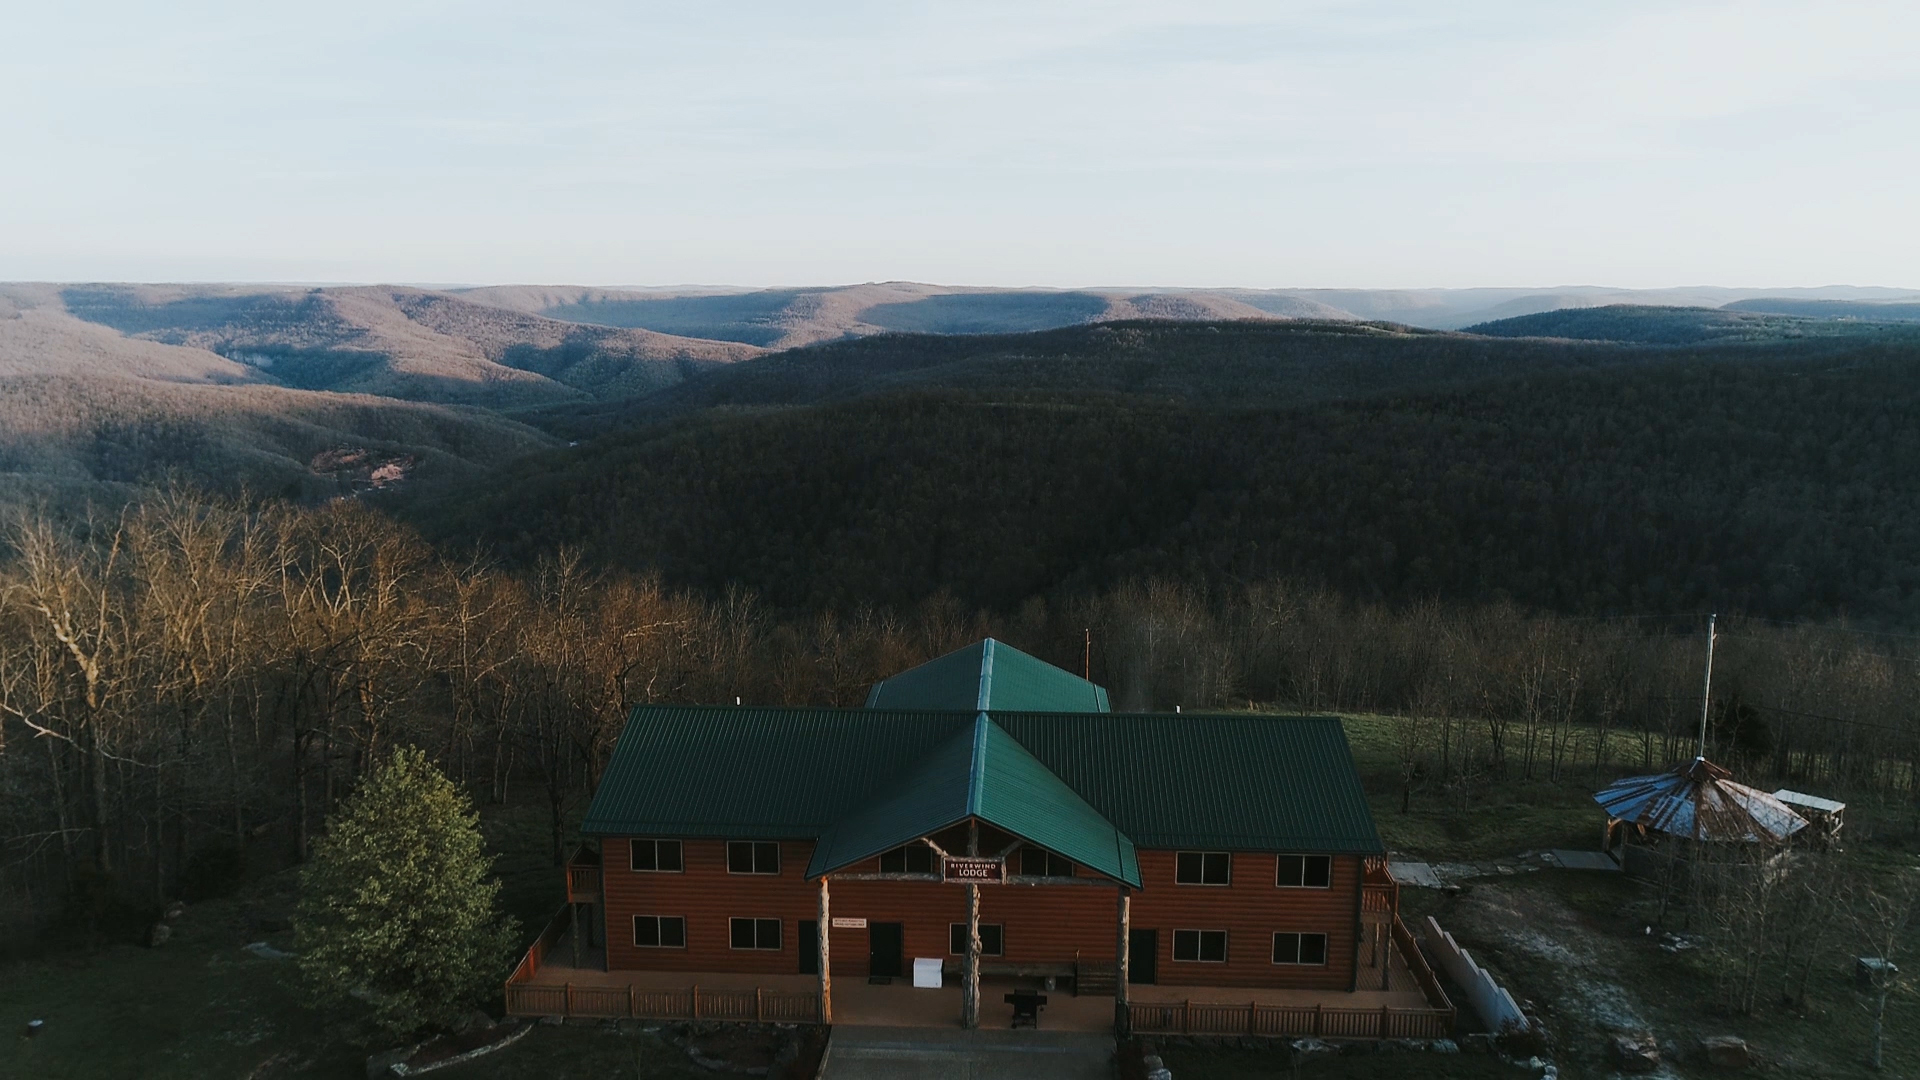 The Riverwind Lodge